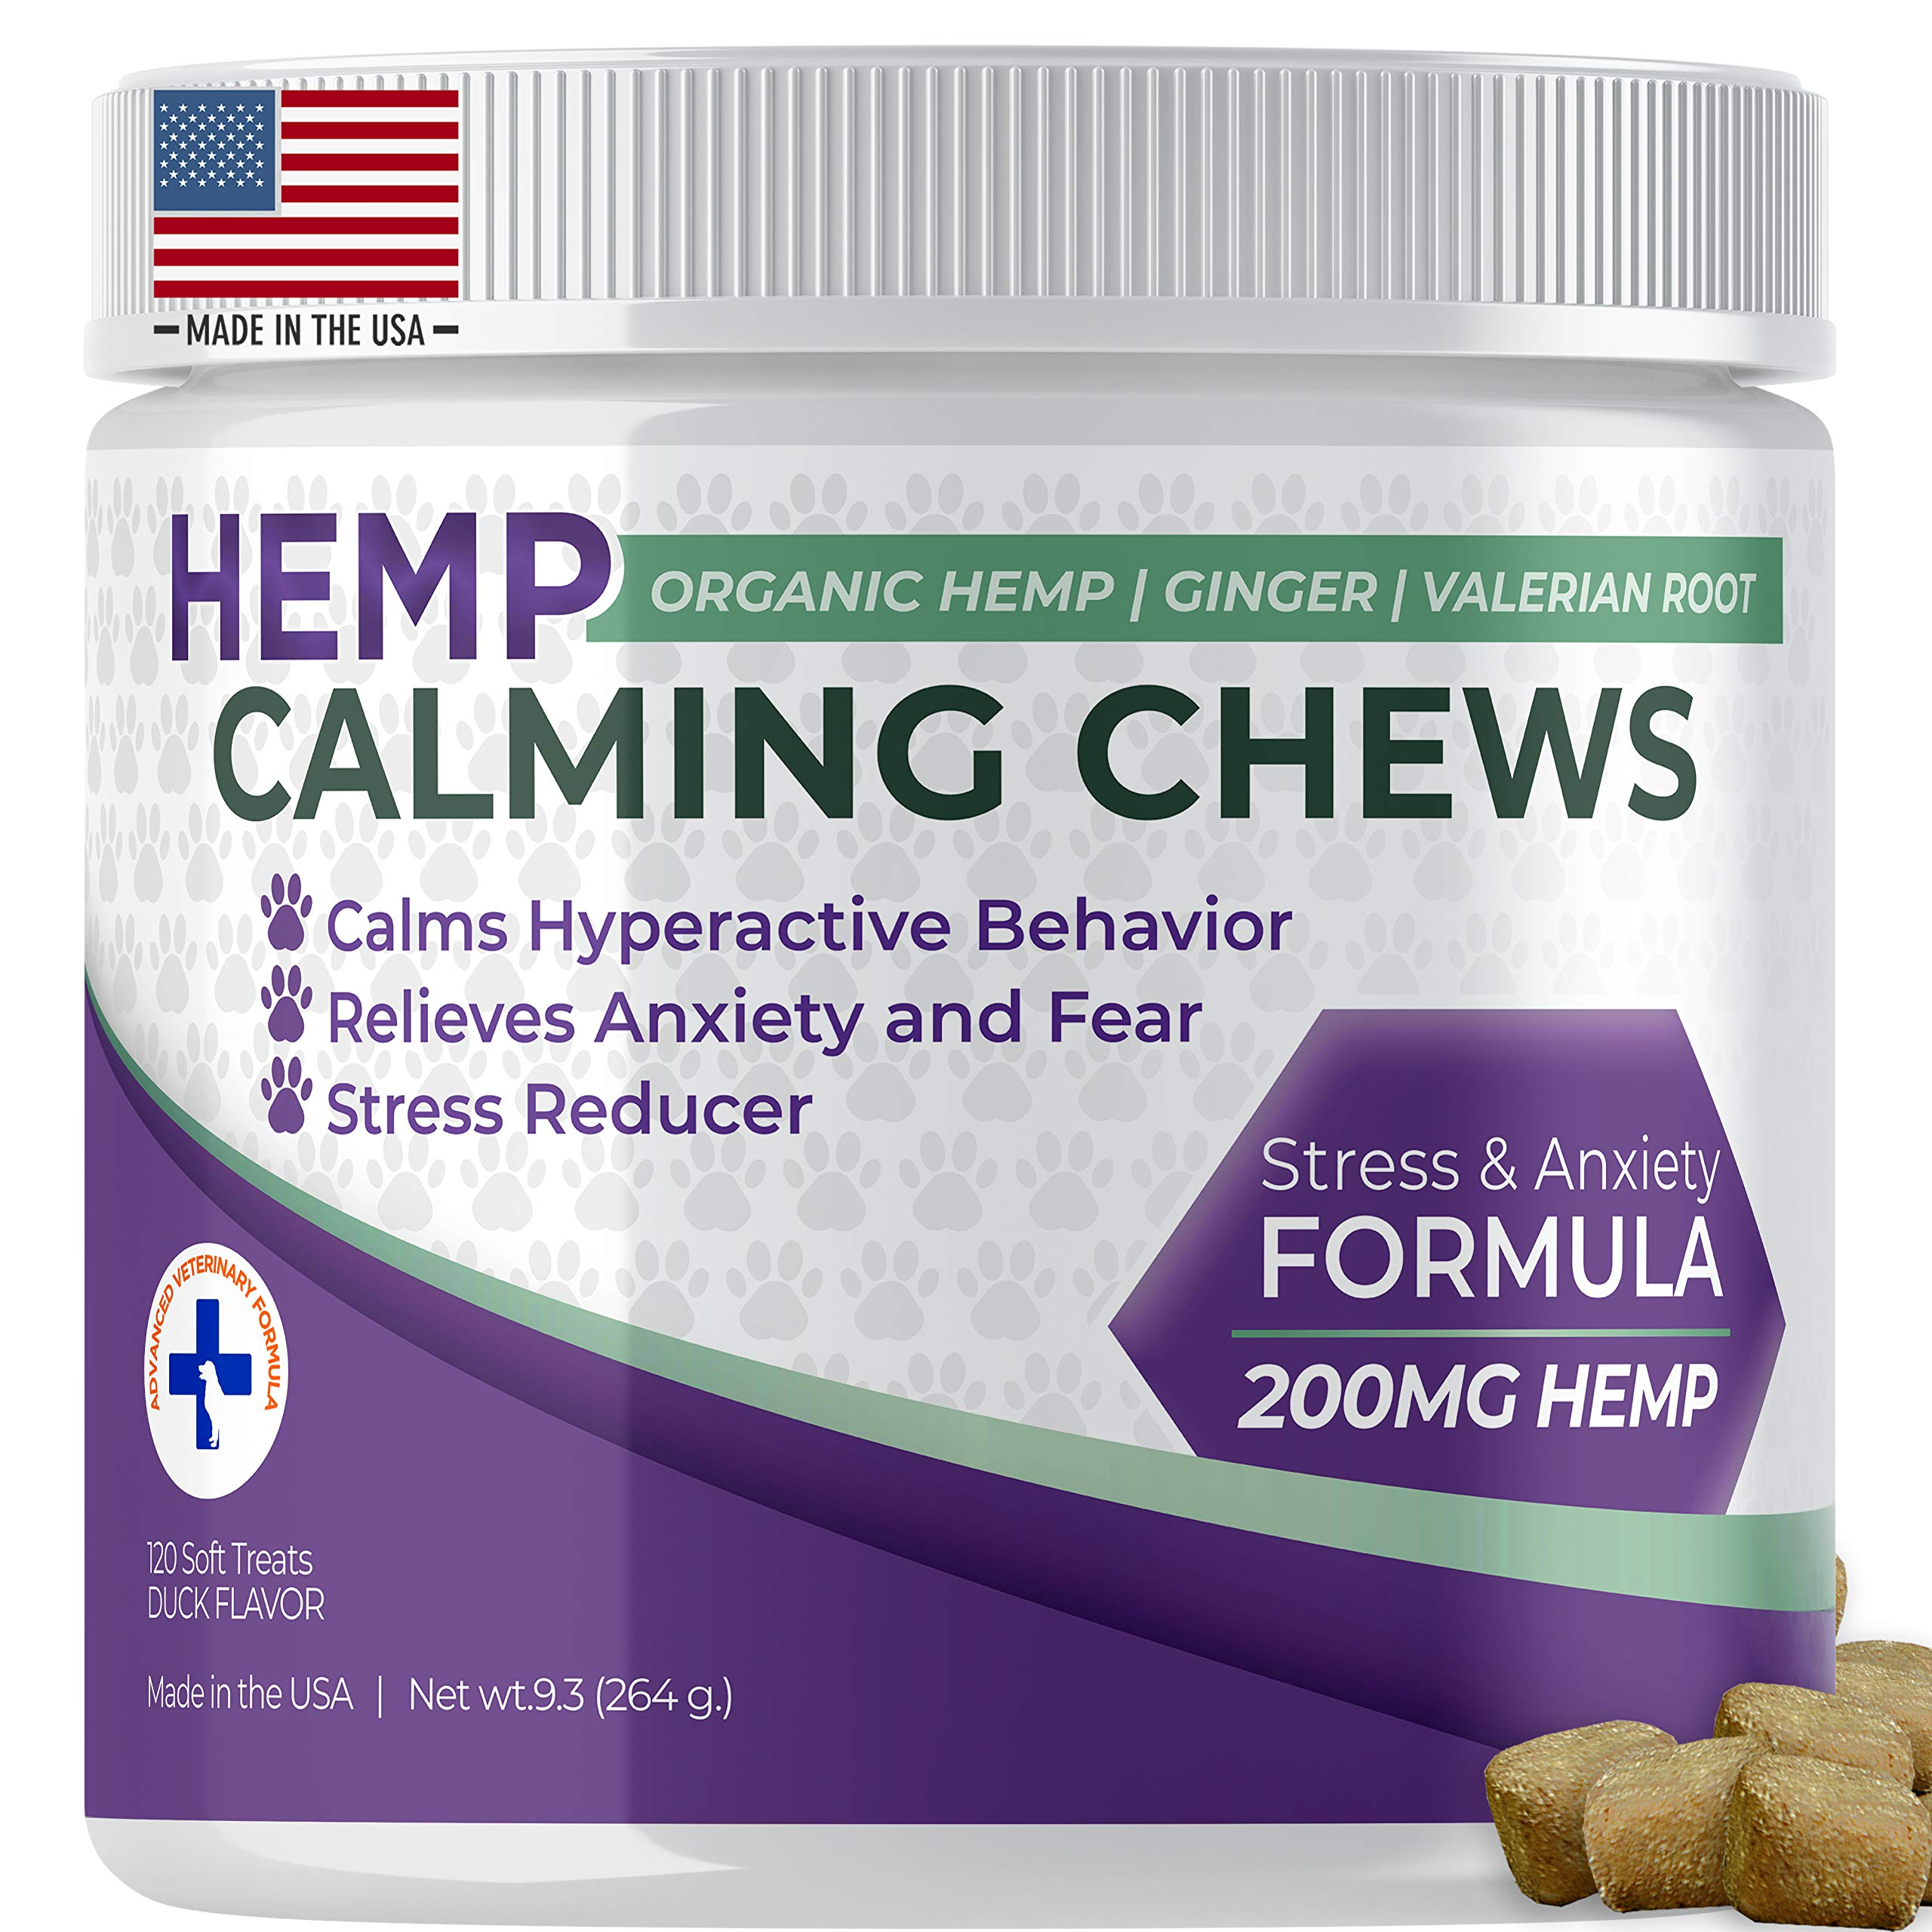 Dog Calming Treats with Hemp Oil Organic Natural Dog Treats Made In The USA Formulated For Composure & Dog Anxiety Relief From Stress Fireworks Thunder Separation - With Ginger & Omega 3 -120 Chews by Bluecare Labs